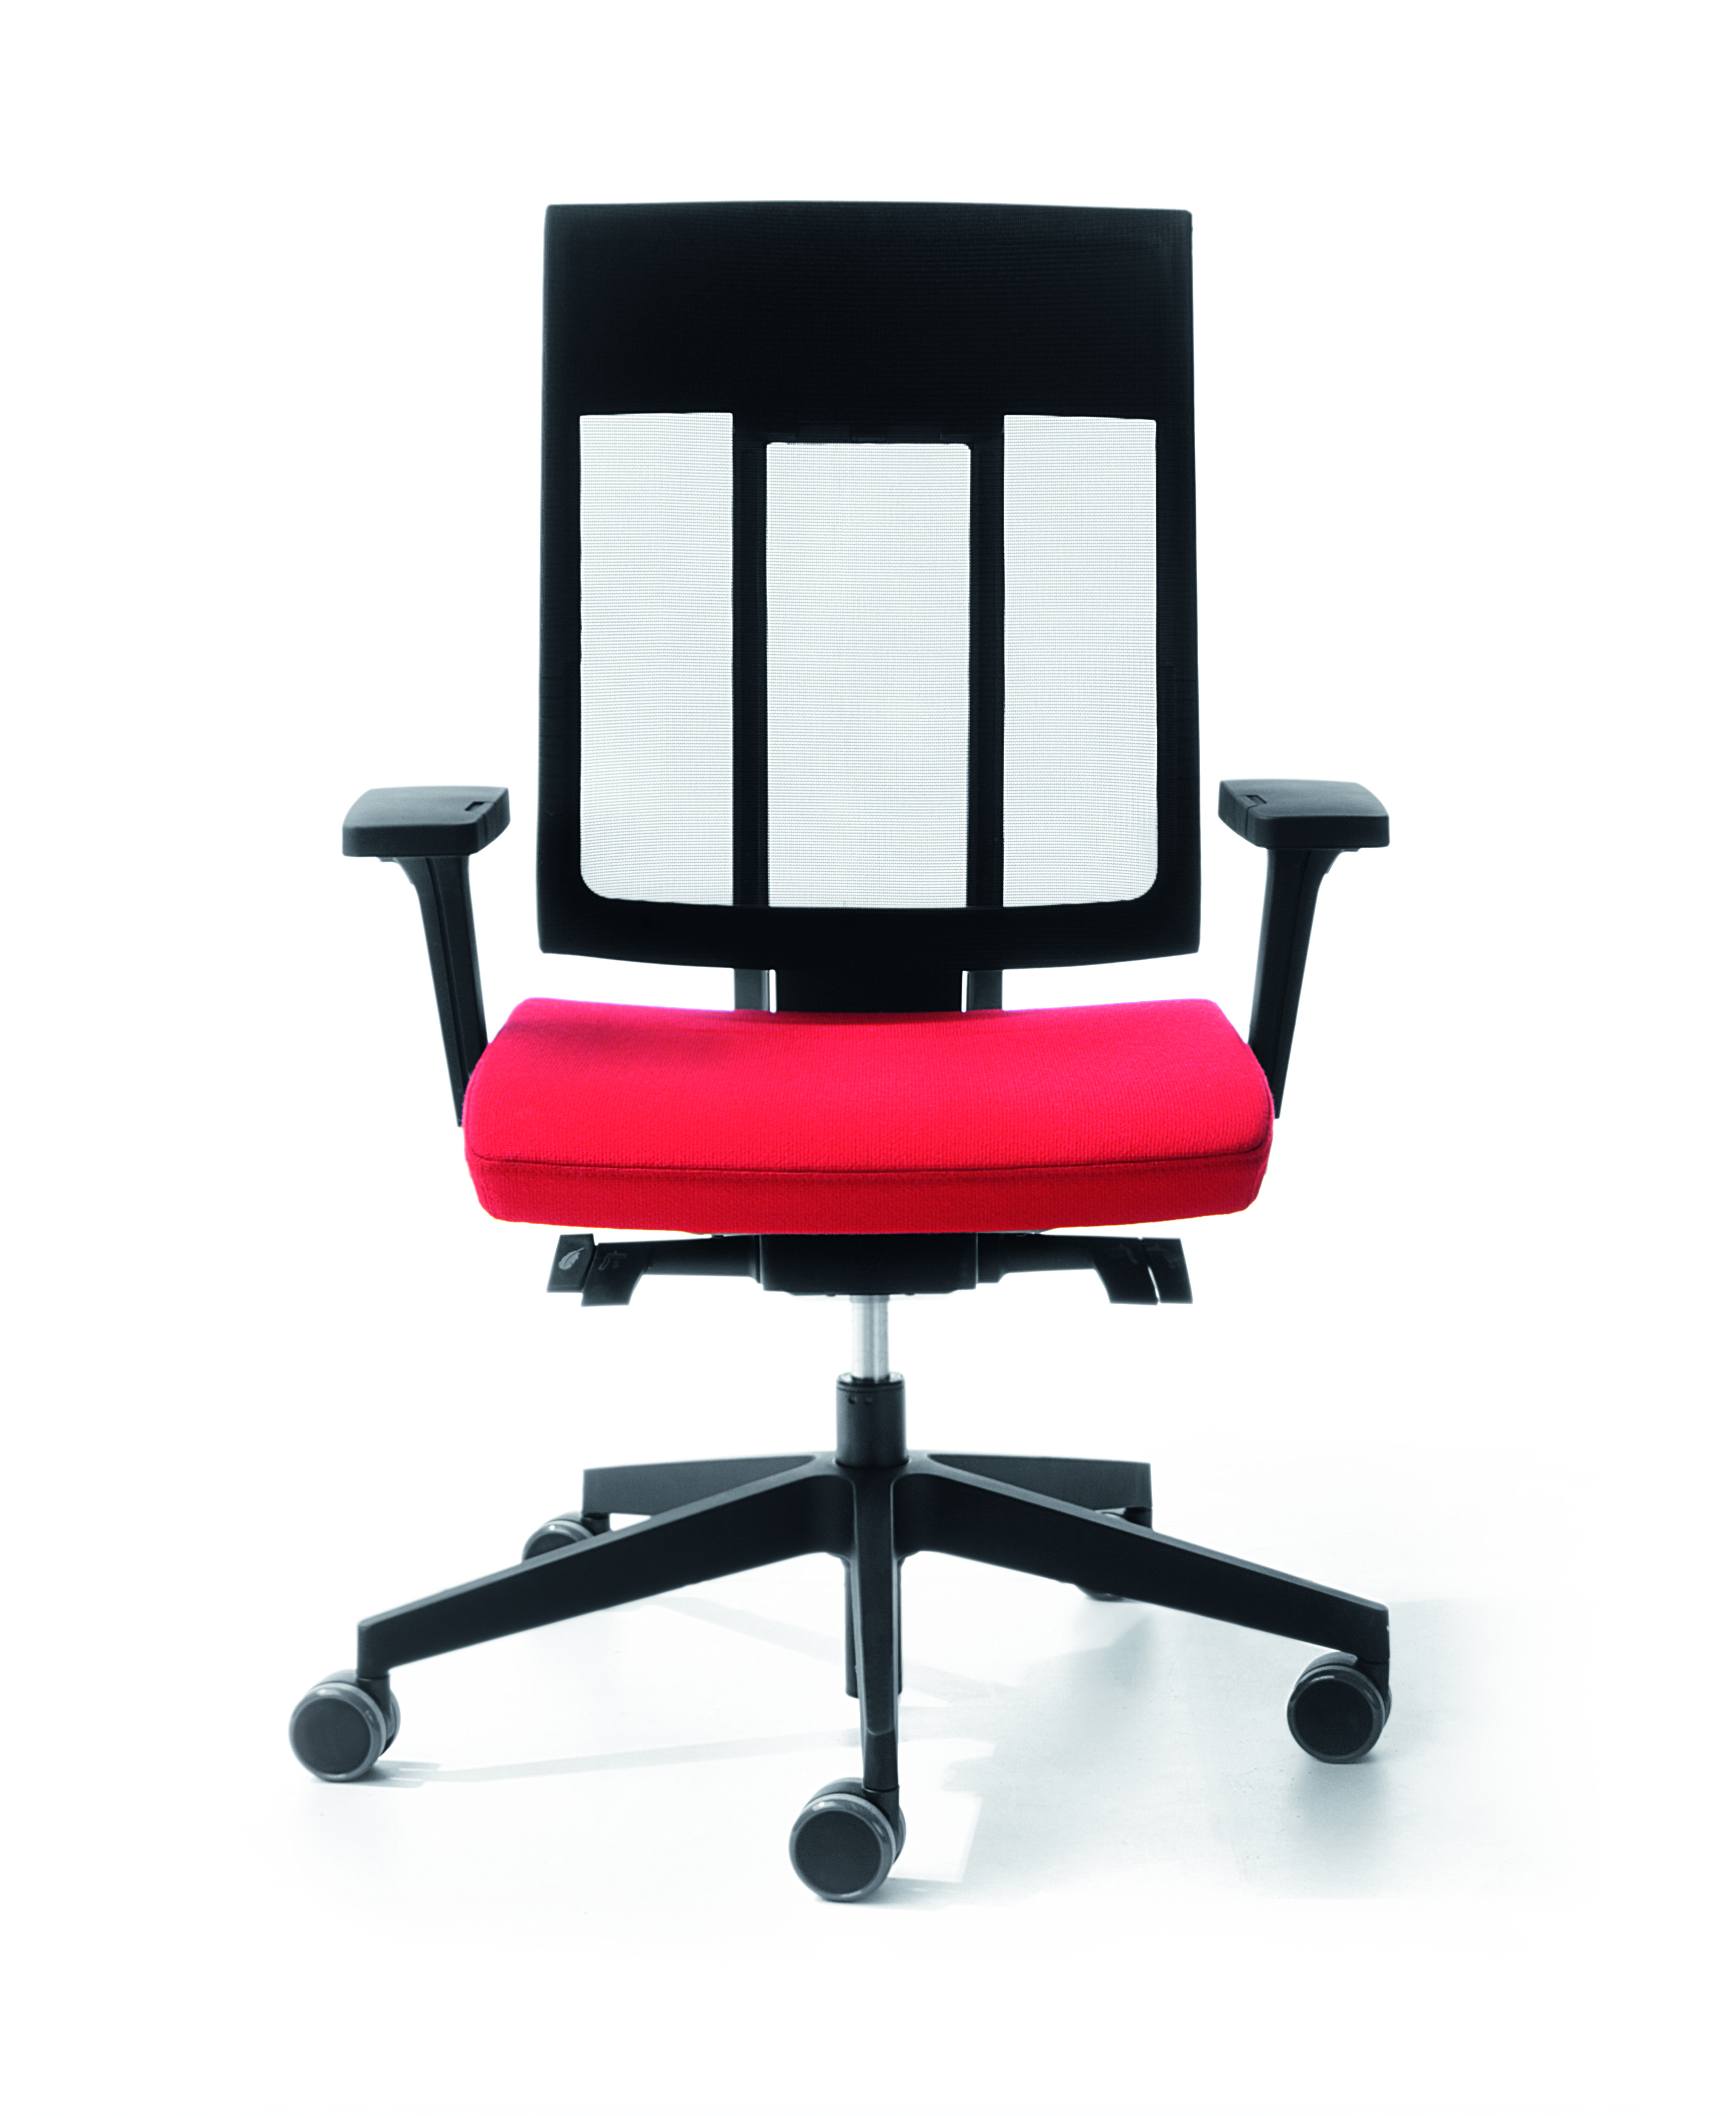 Xenon Net Office furniture chairs supplies in Dublin  : xenon net 100stl black p59puprofim from officethingsinteriors.ie size 2863 x 3490 jpeg 5395kB